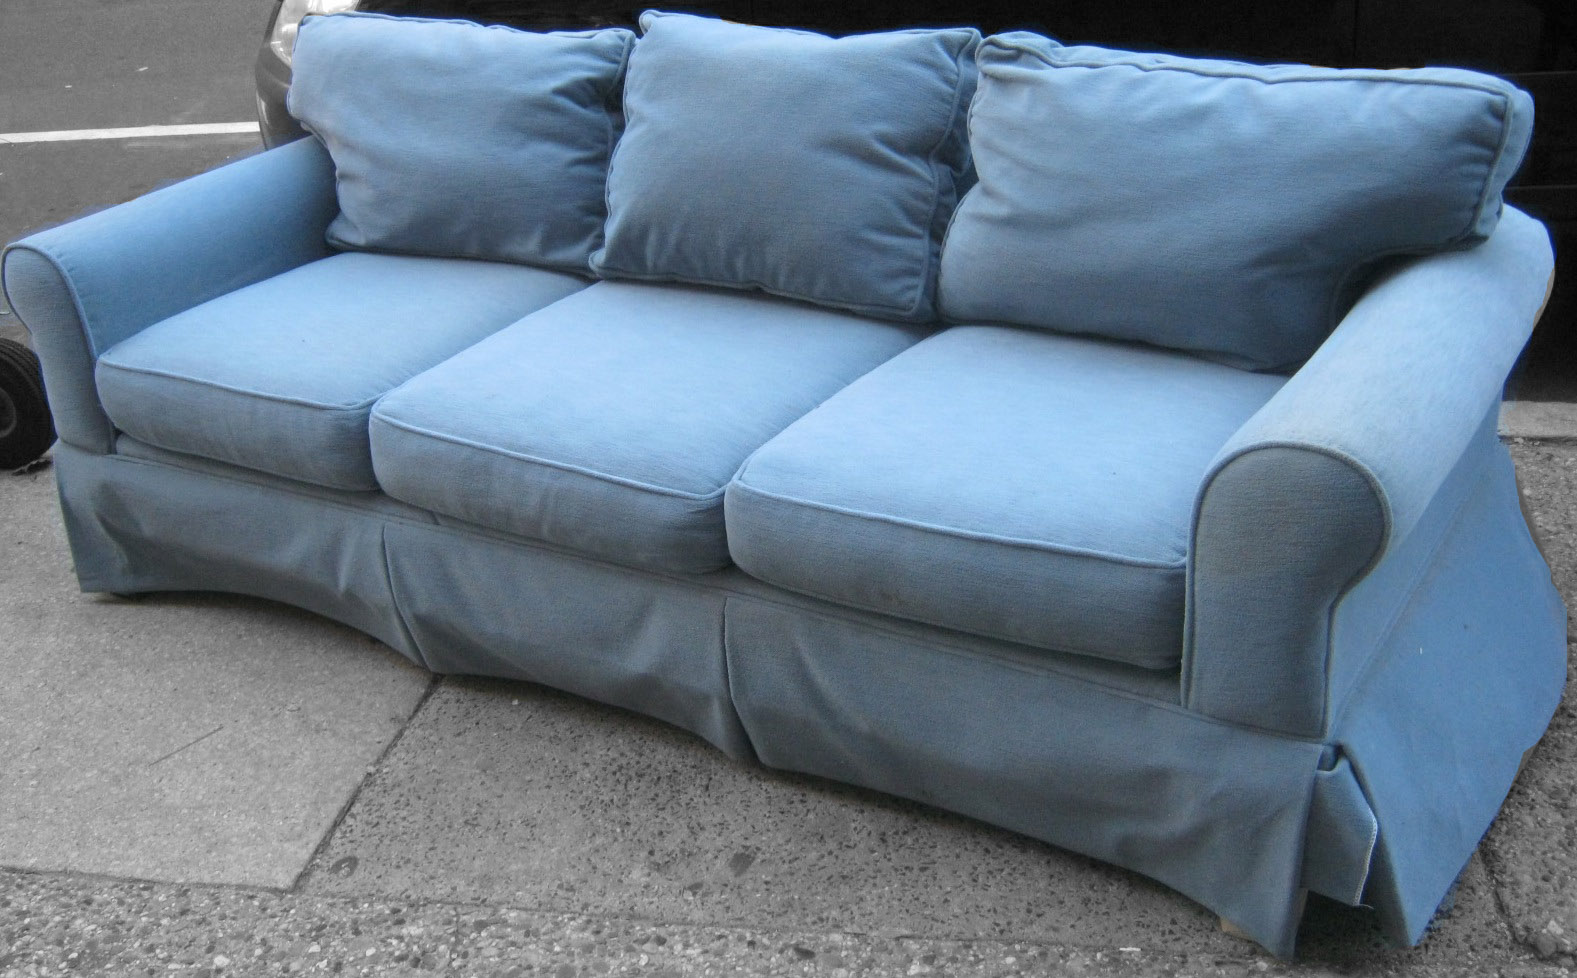 Uhuru Furniture & Collectibles: Light Blue Sofa SOLD